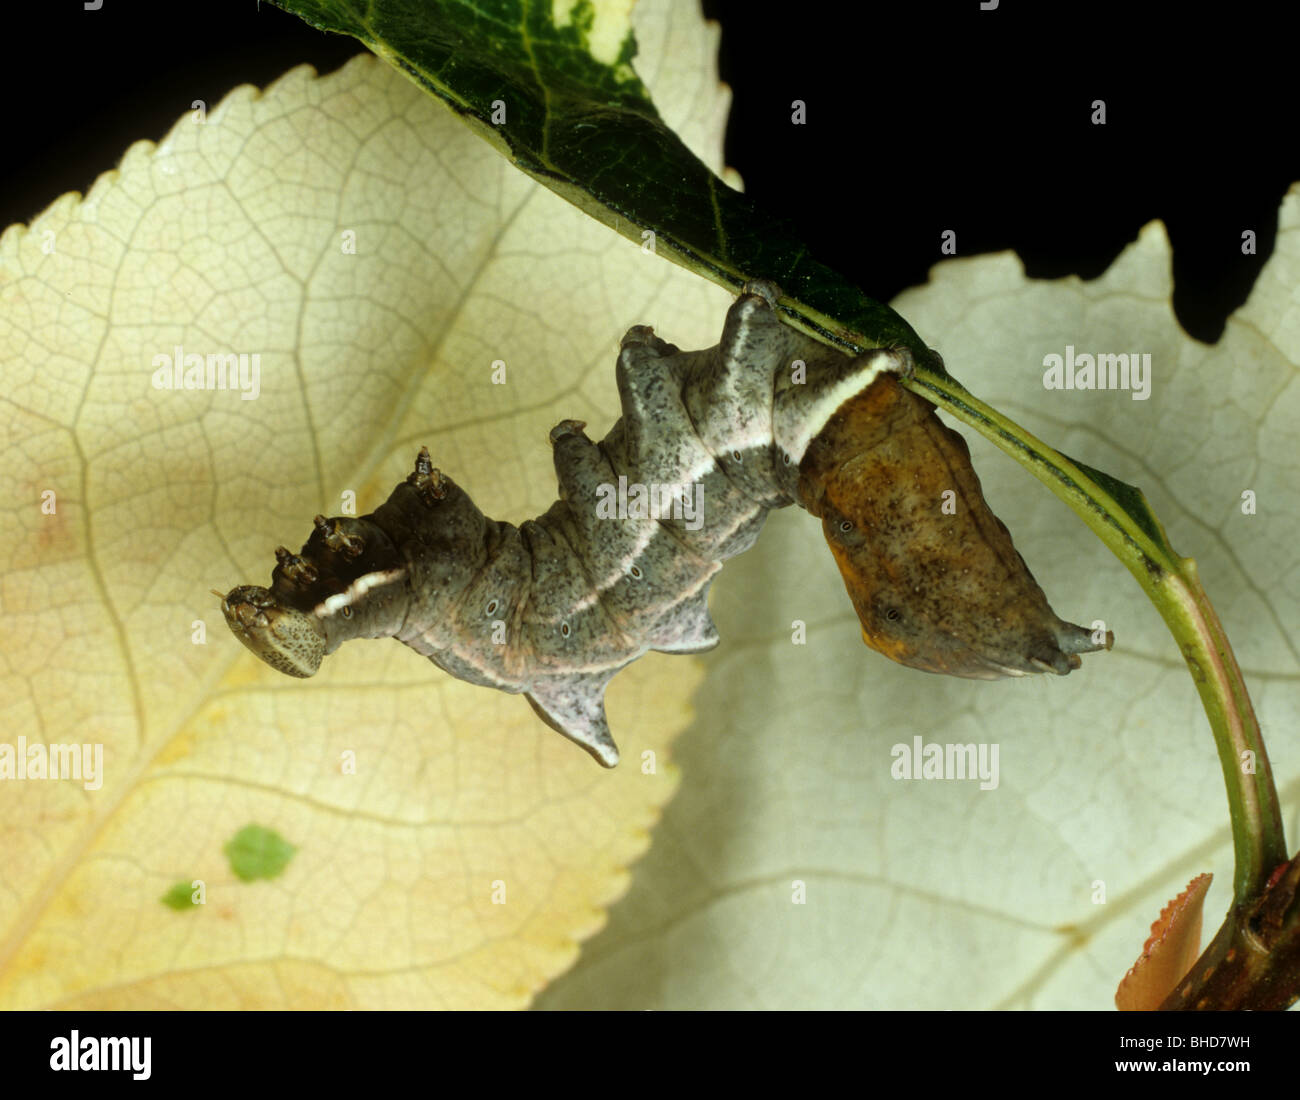 A pebble prominent moth (Eligmodonta ziczac) caterpllar on an ornamenta tree leaf - Stock Image